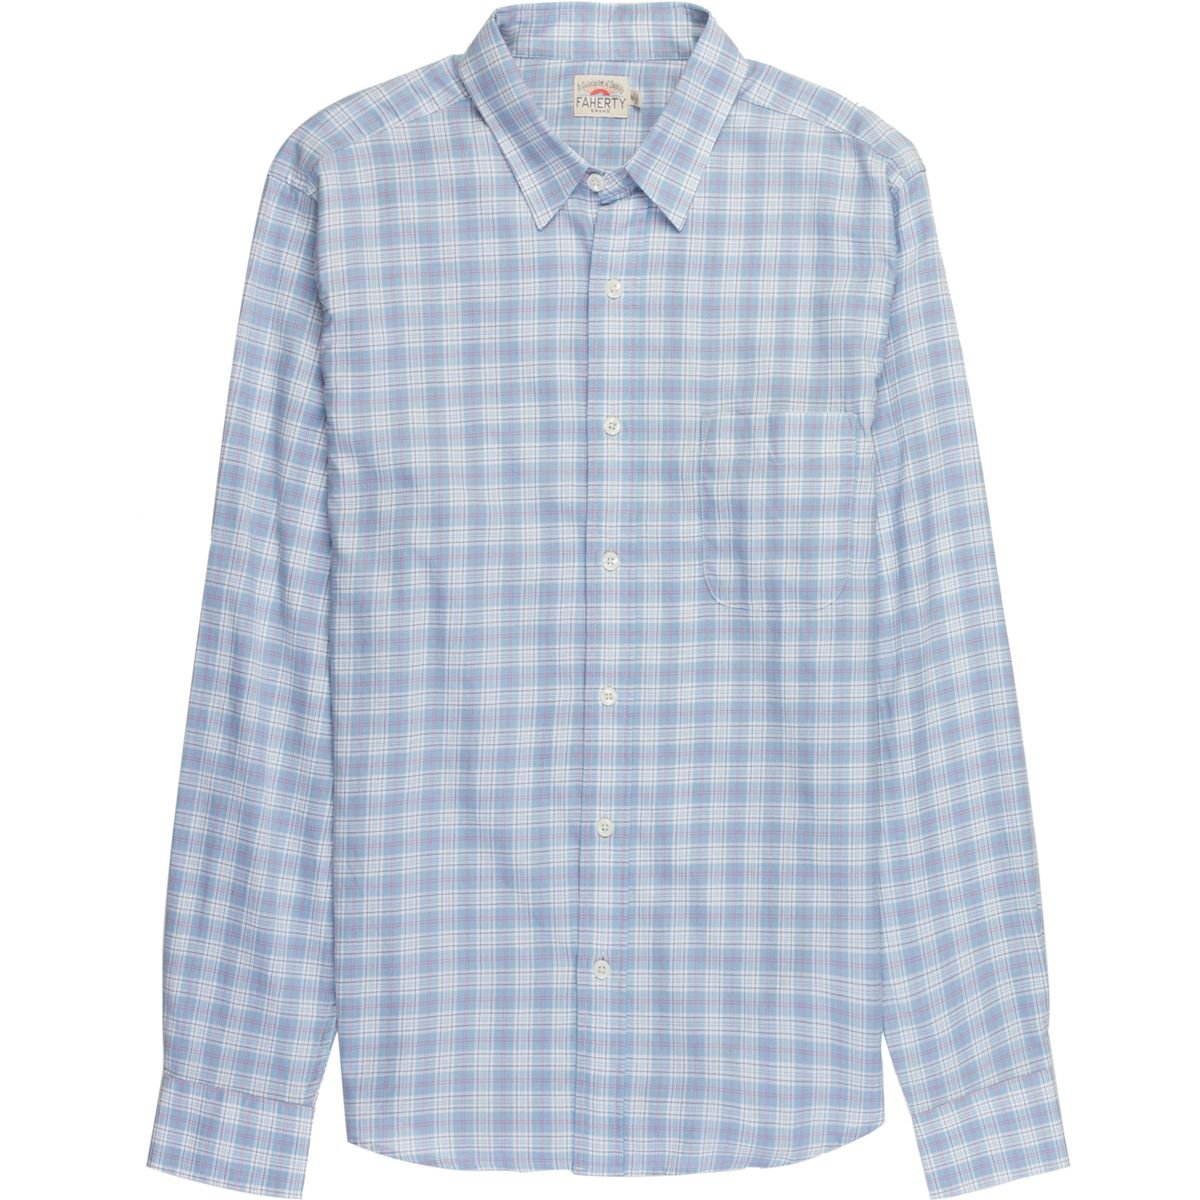 7fe68bf8 Amazon.com: Faherty Men's Signature Washed Twill Shirt Navy Windowpane:  Clothing